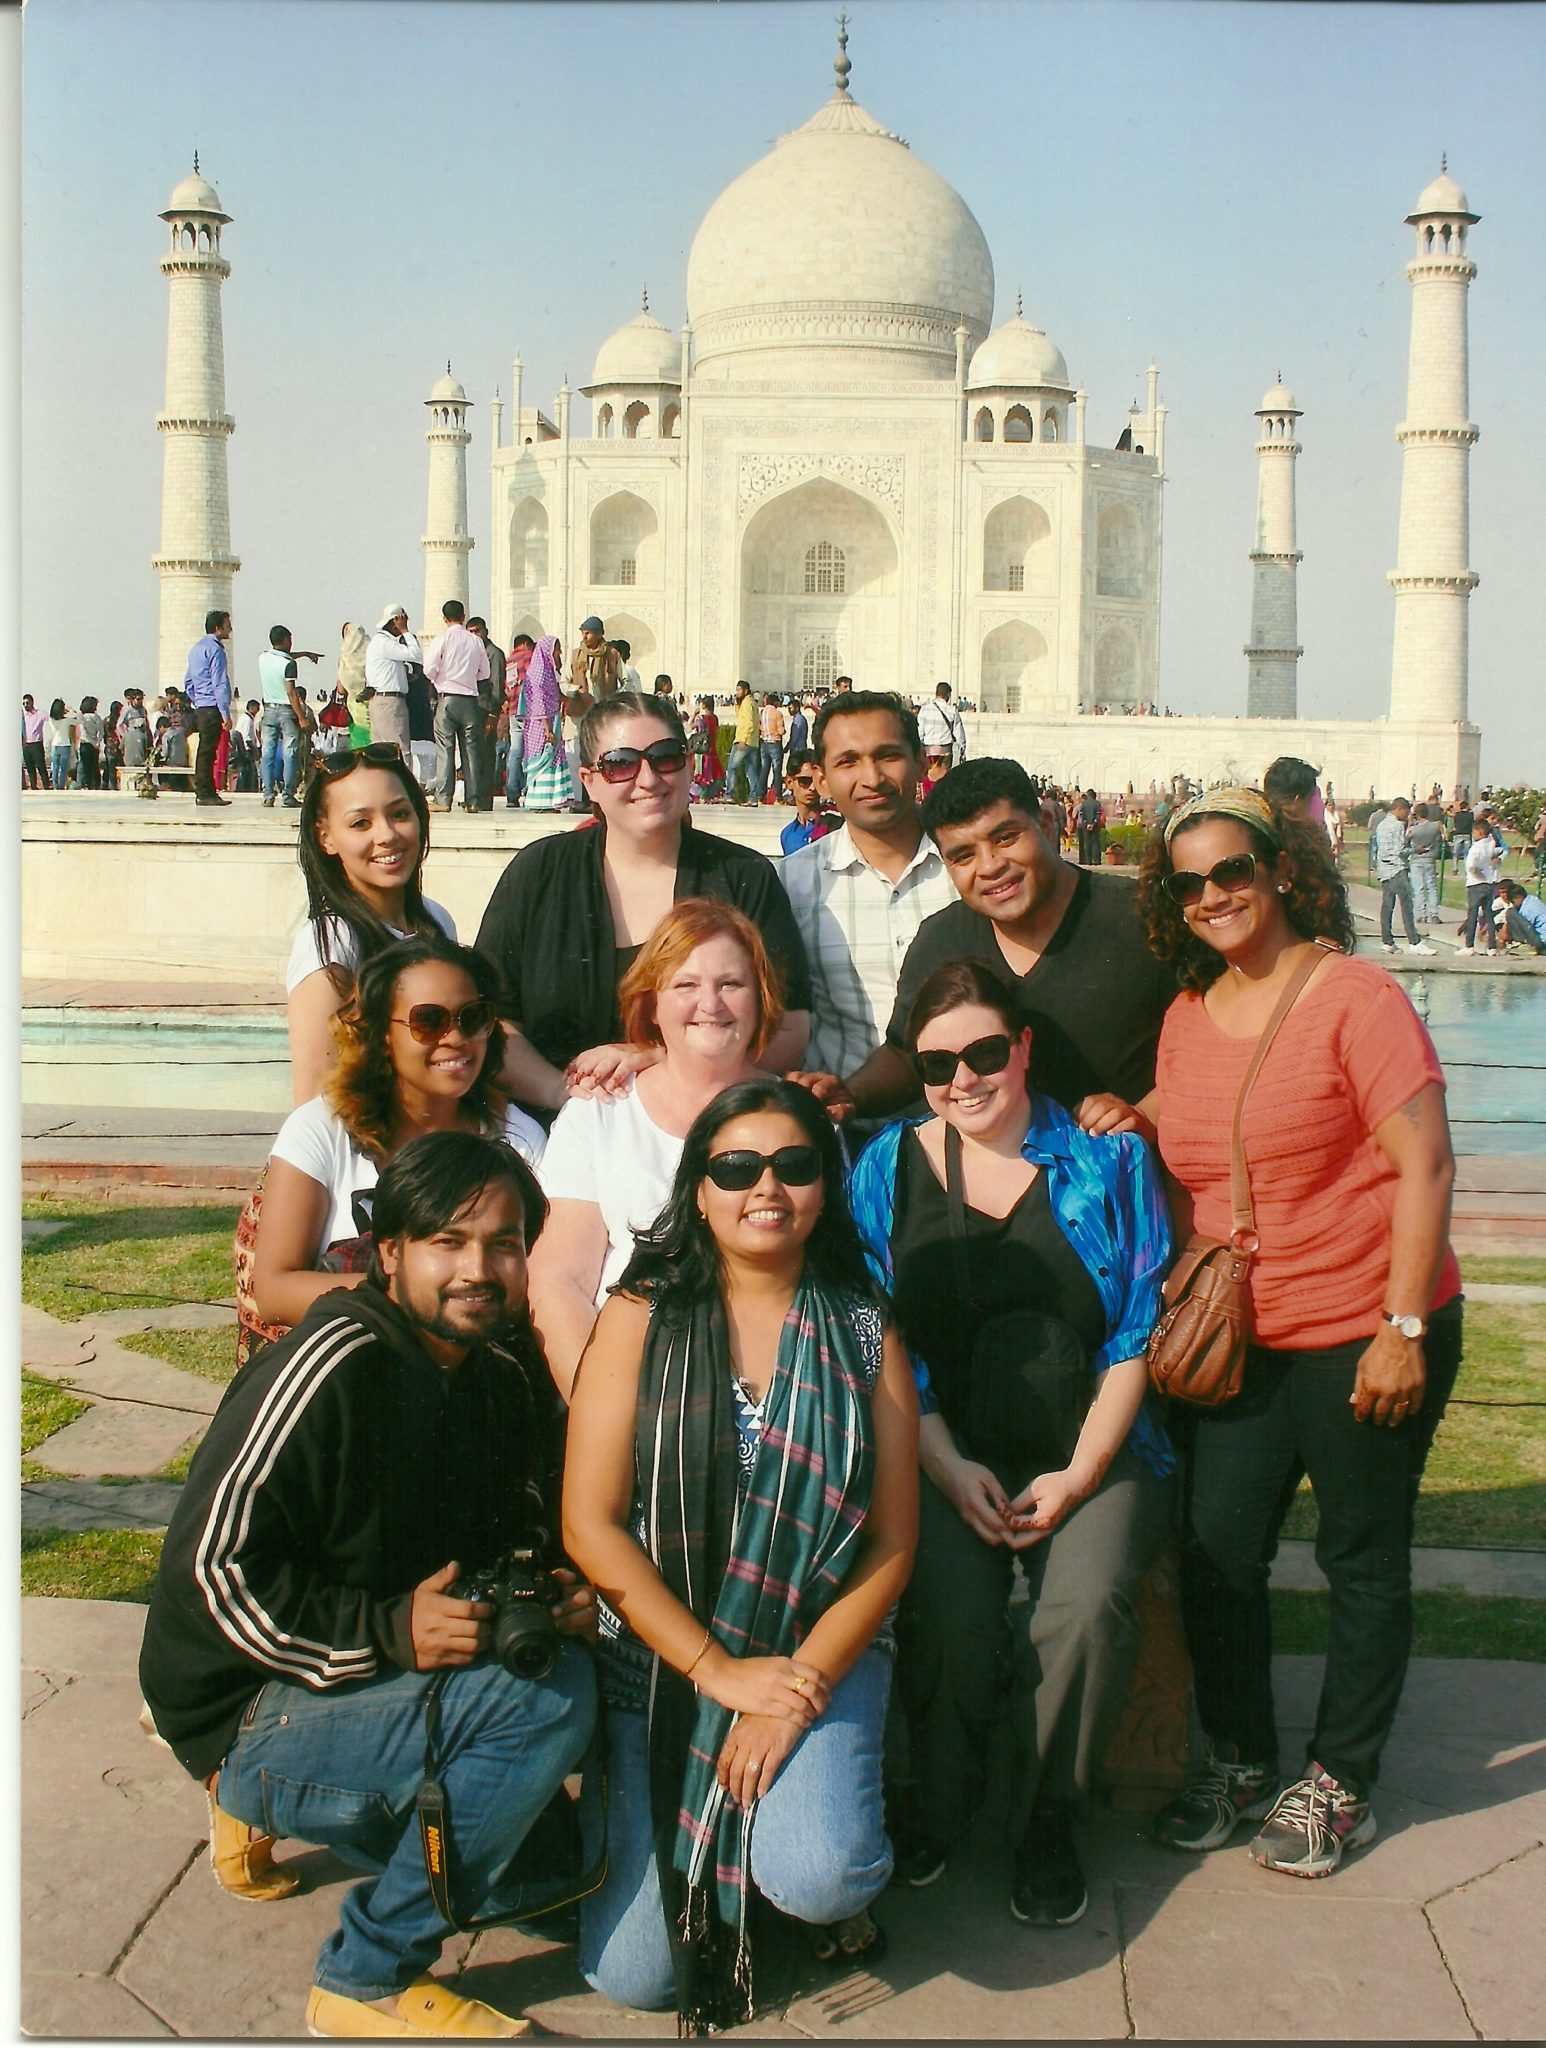 Students on a study abroad trip in India